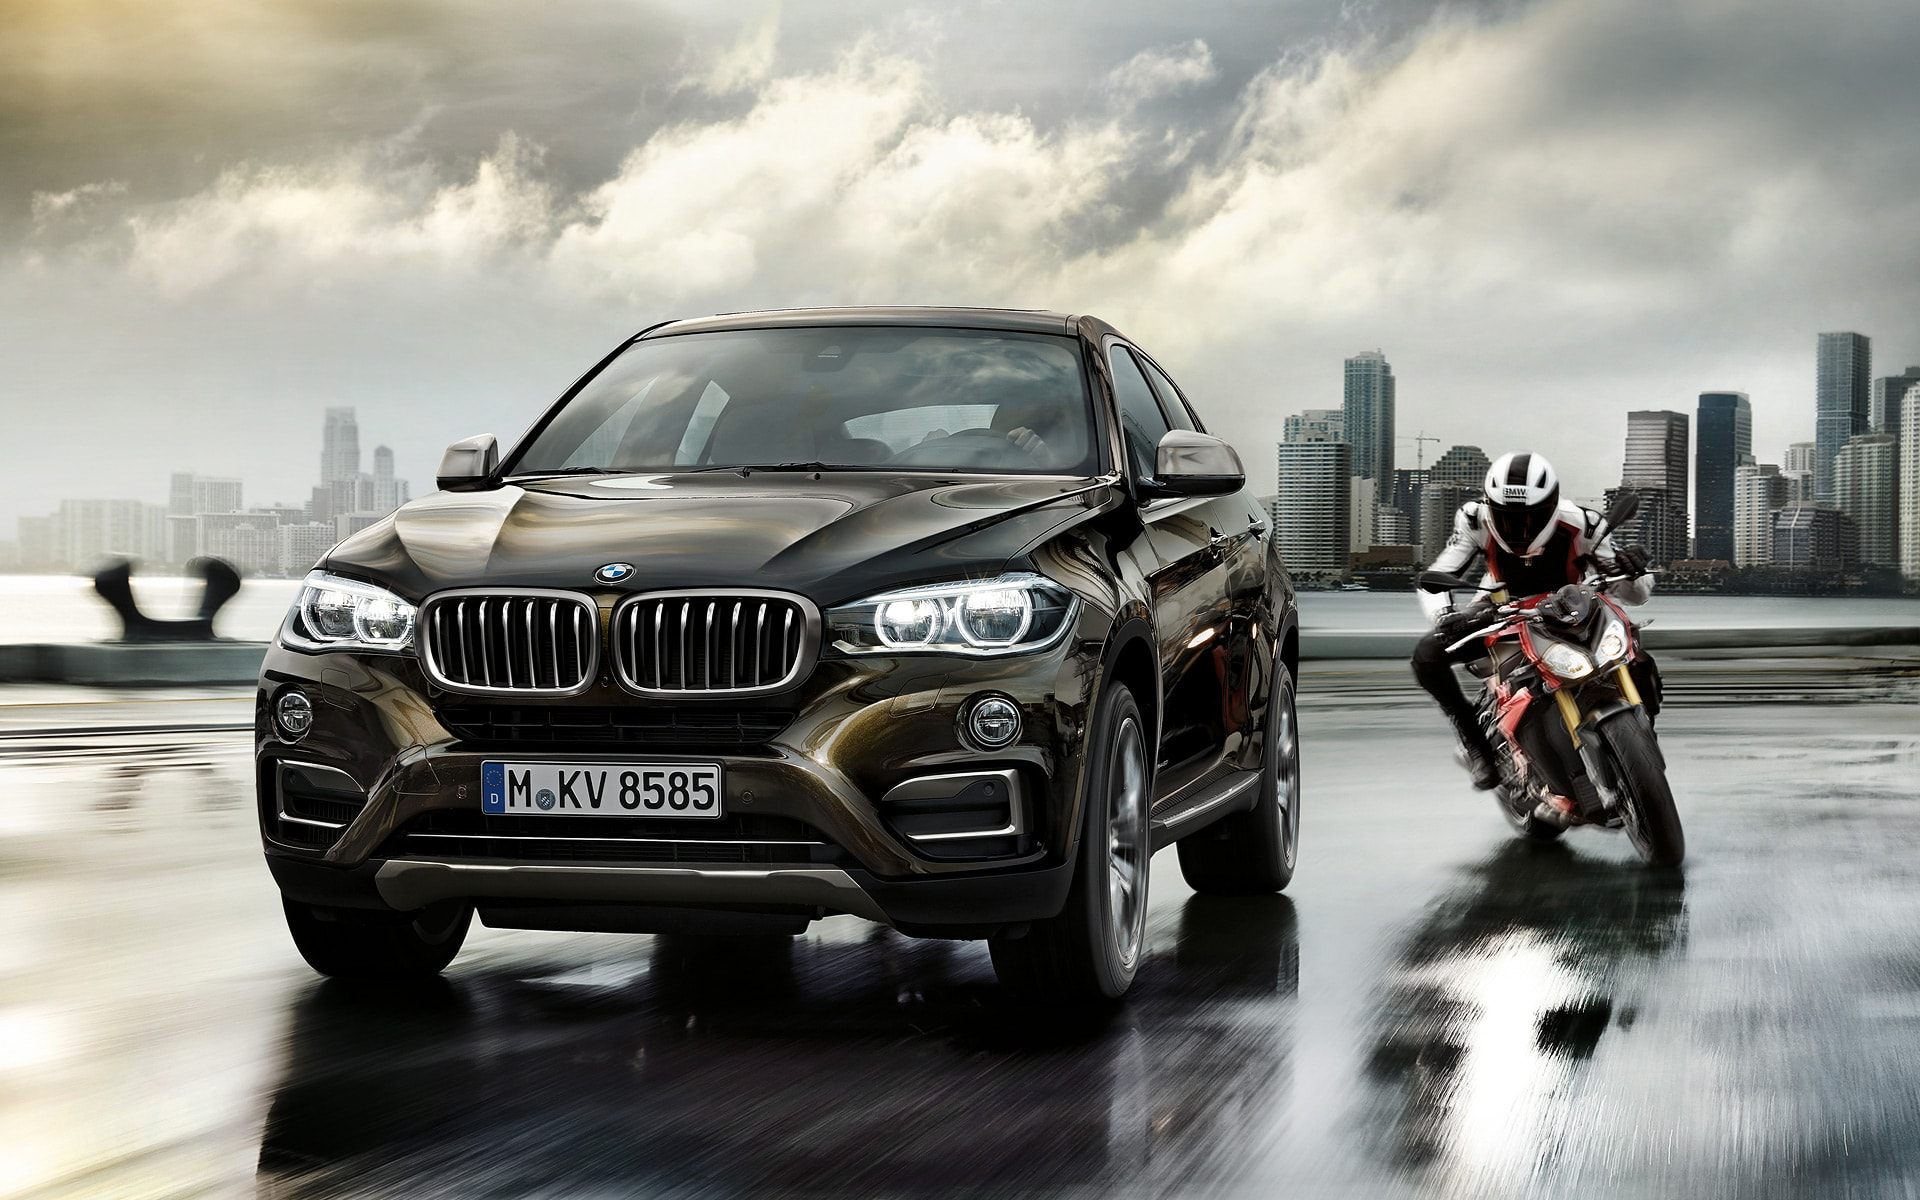 1920x1200 - BMW X6 Wallpapers 30